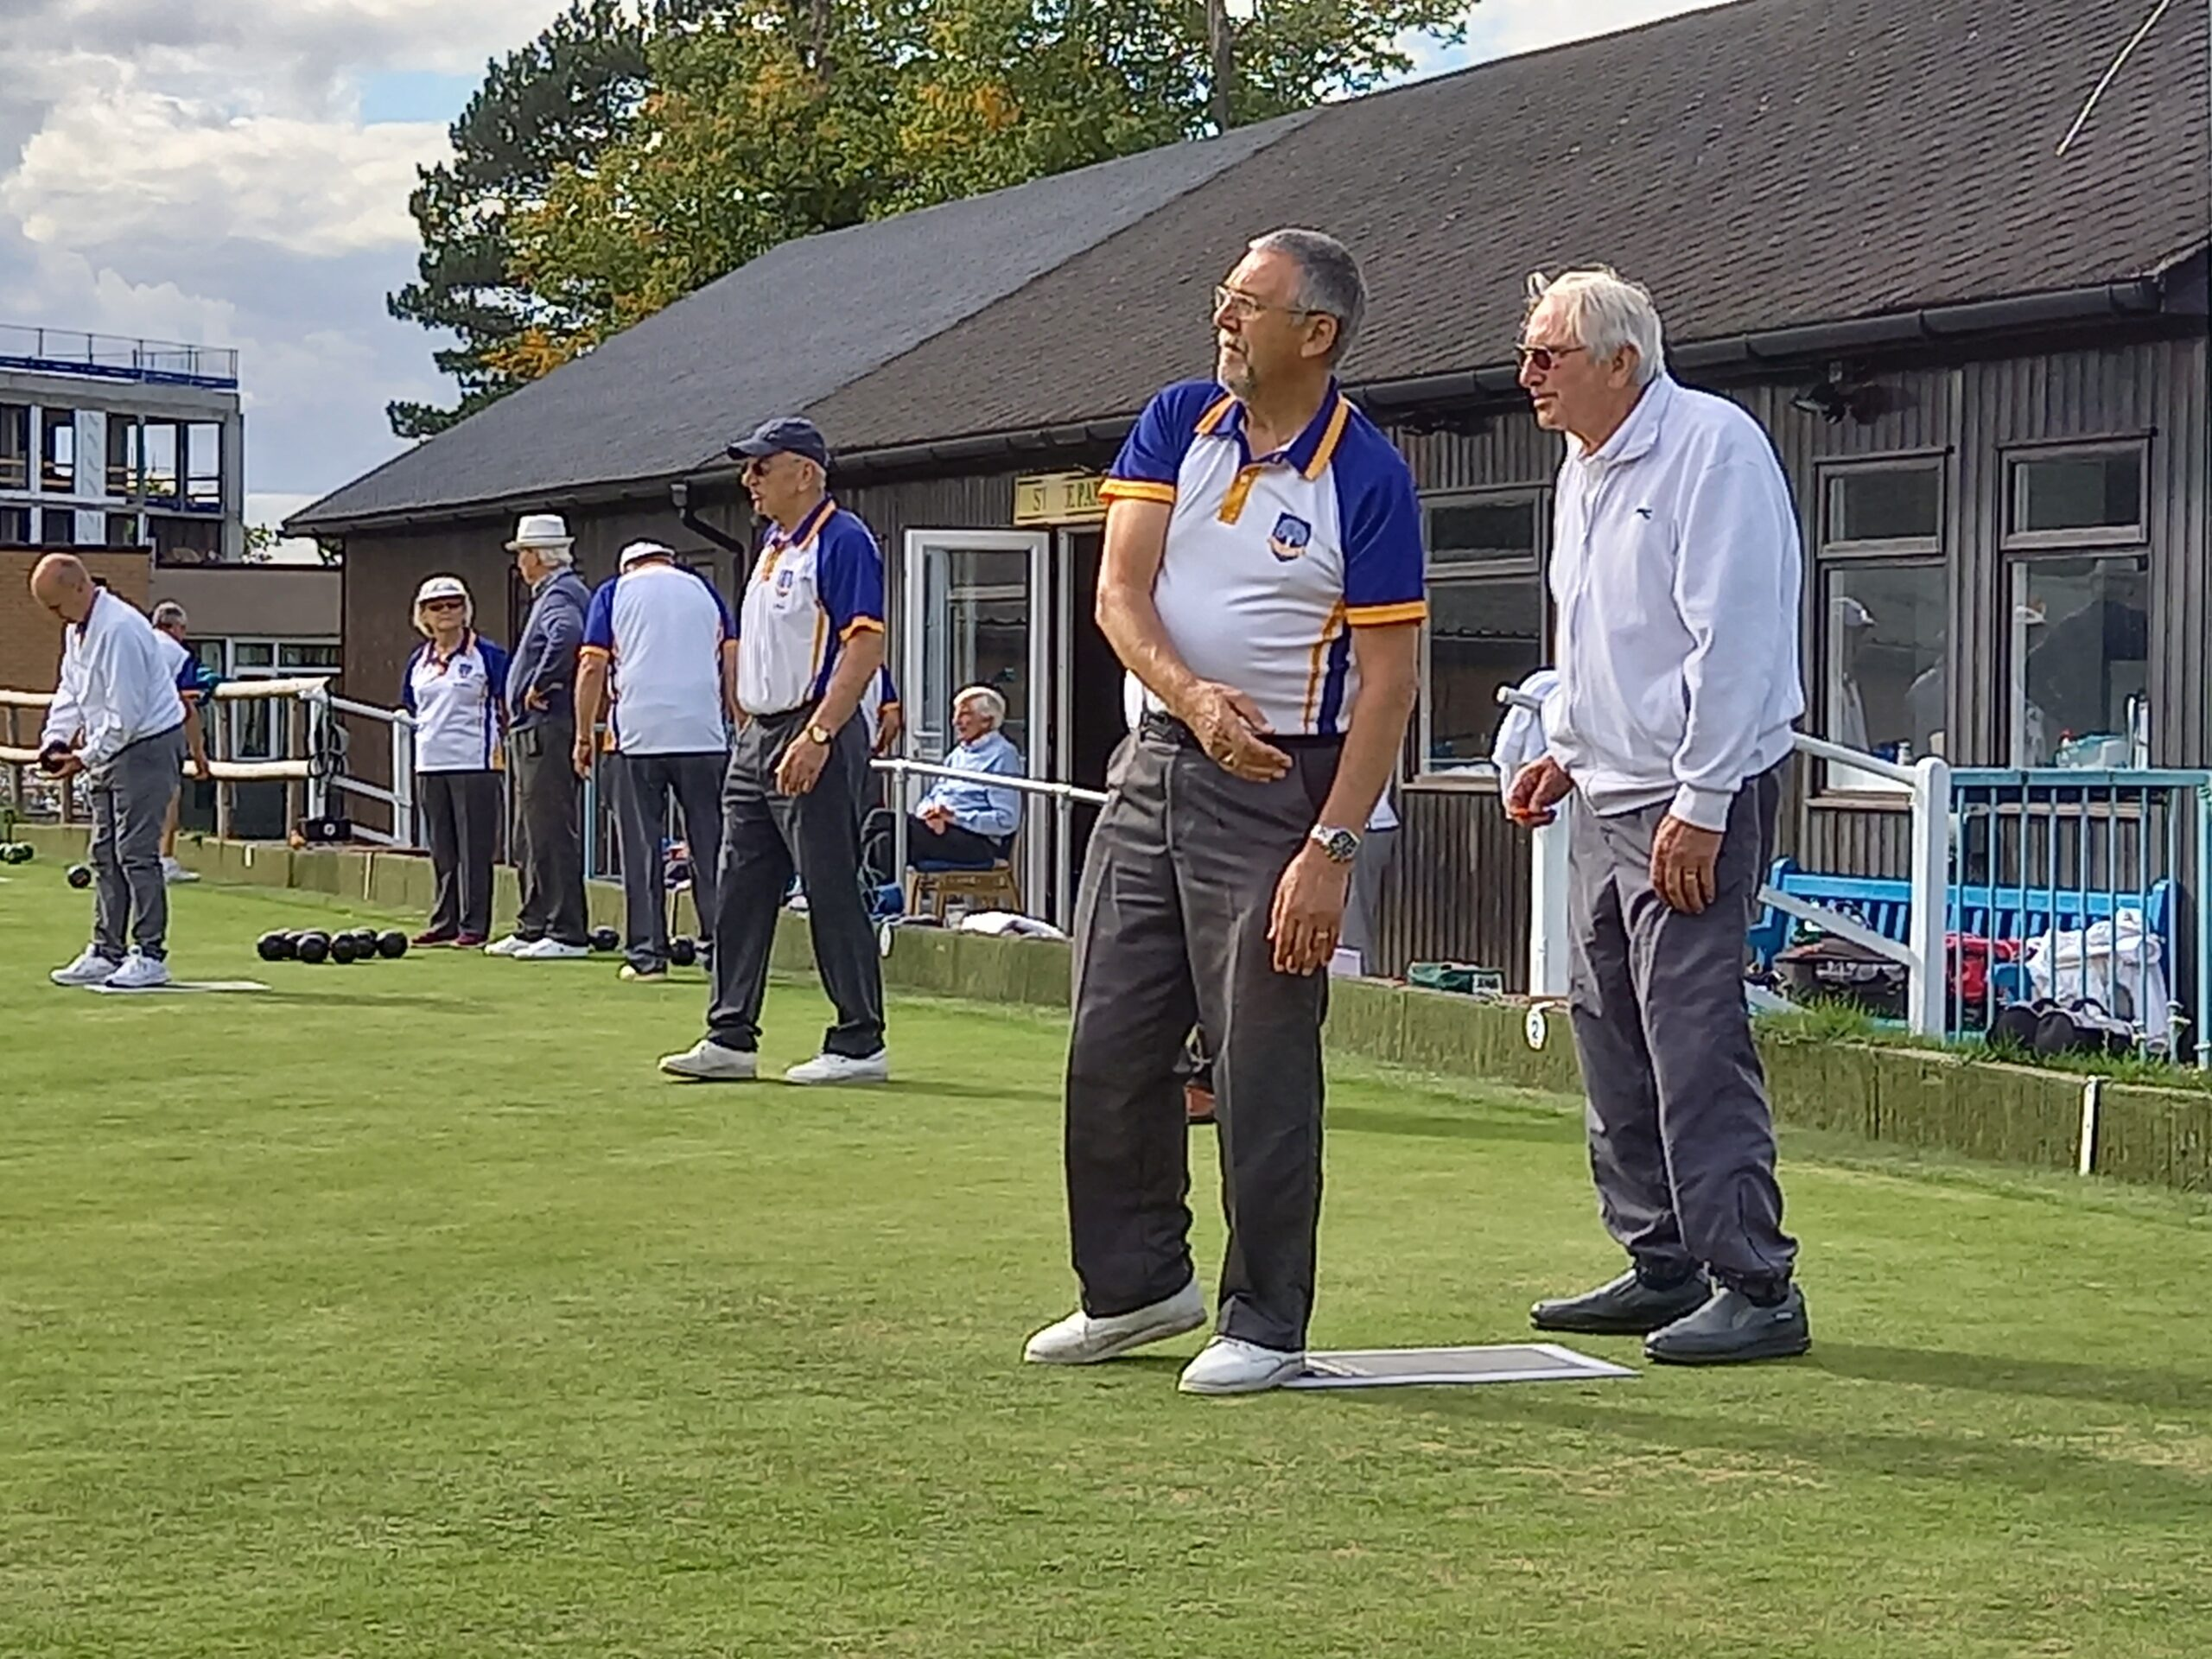 people playing bowls outside